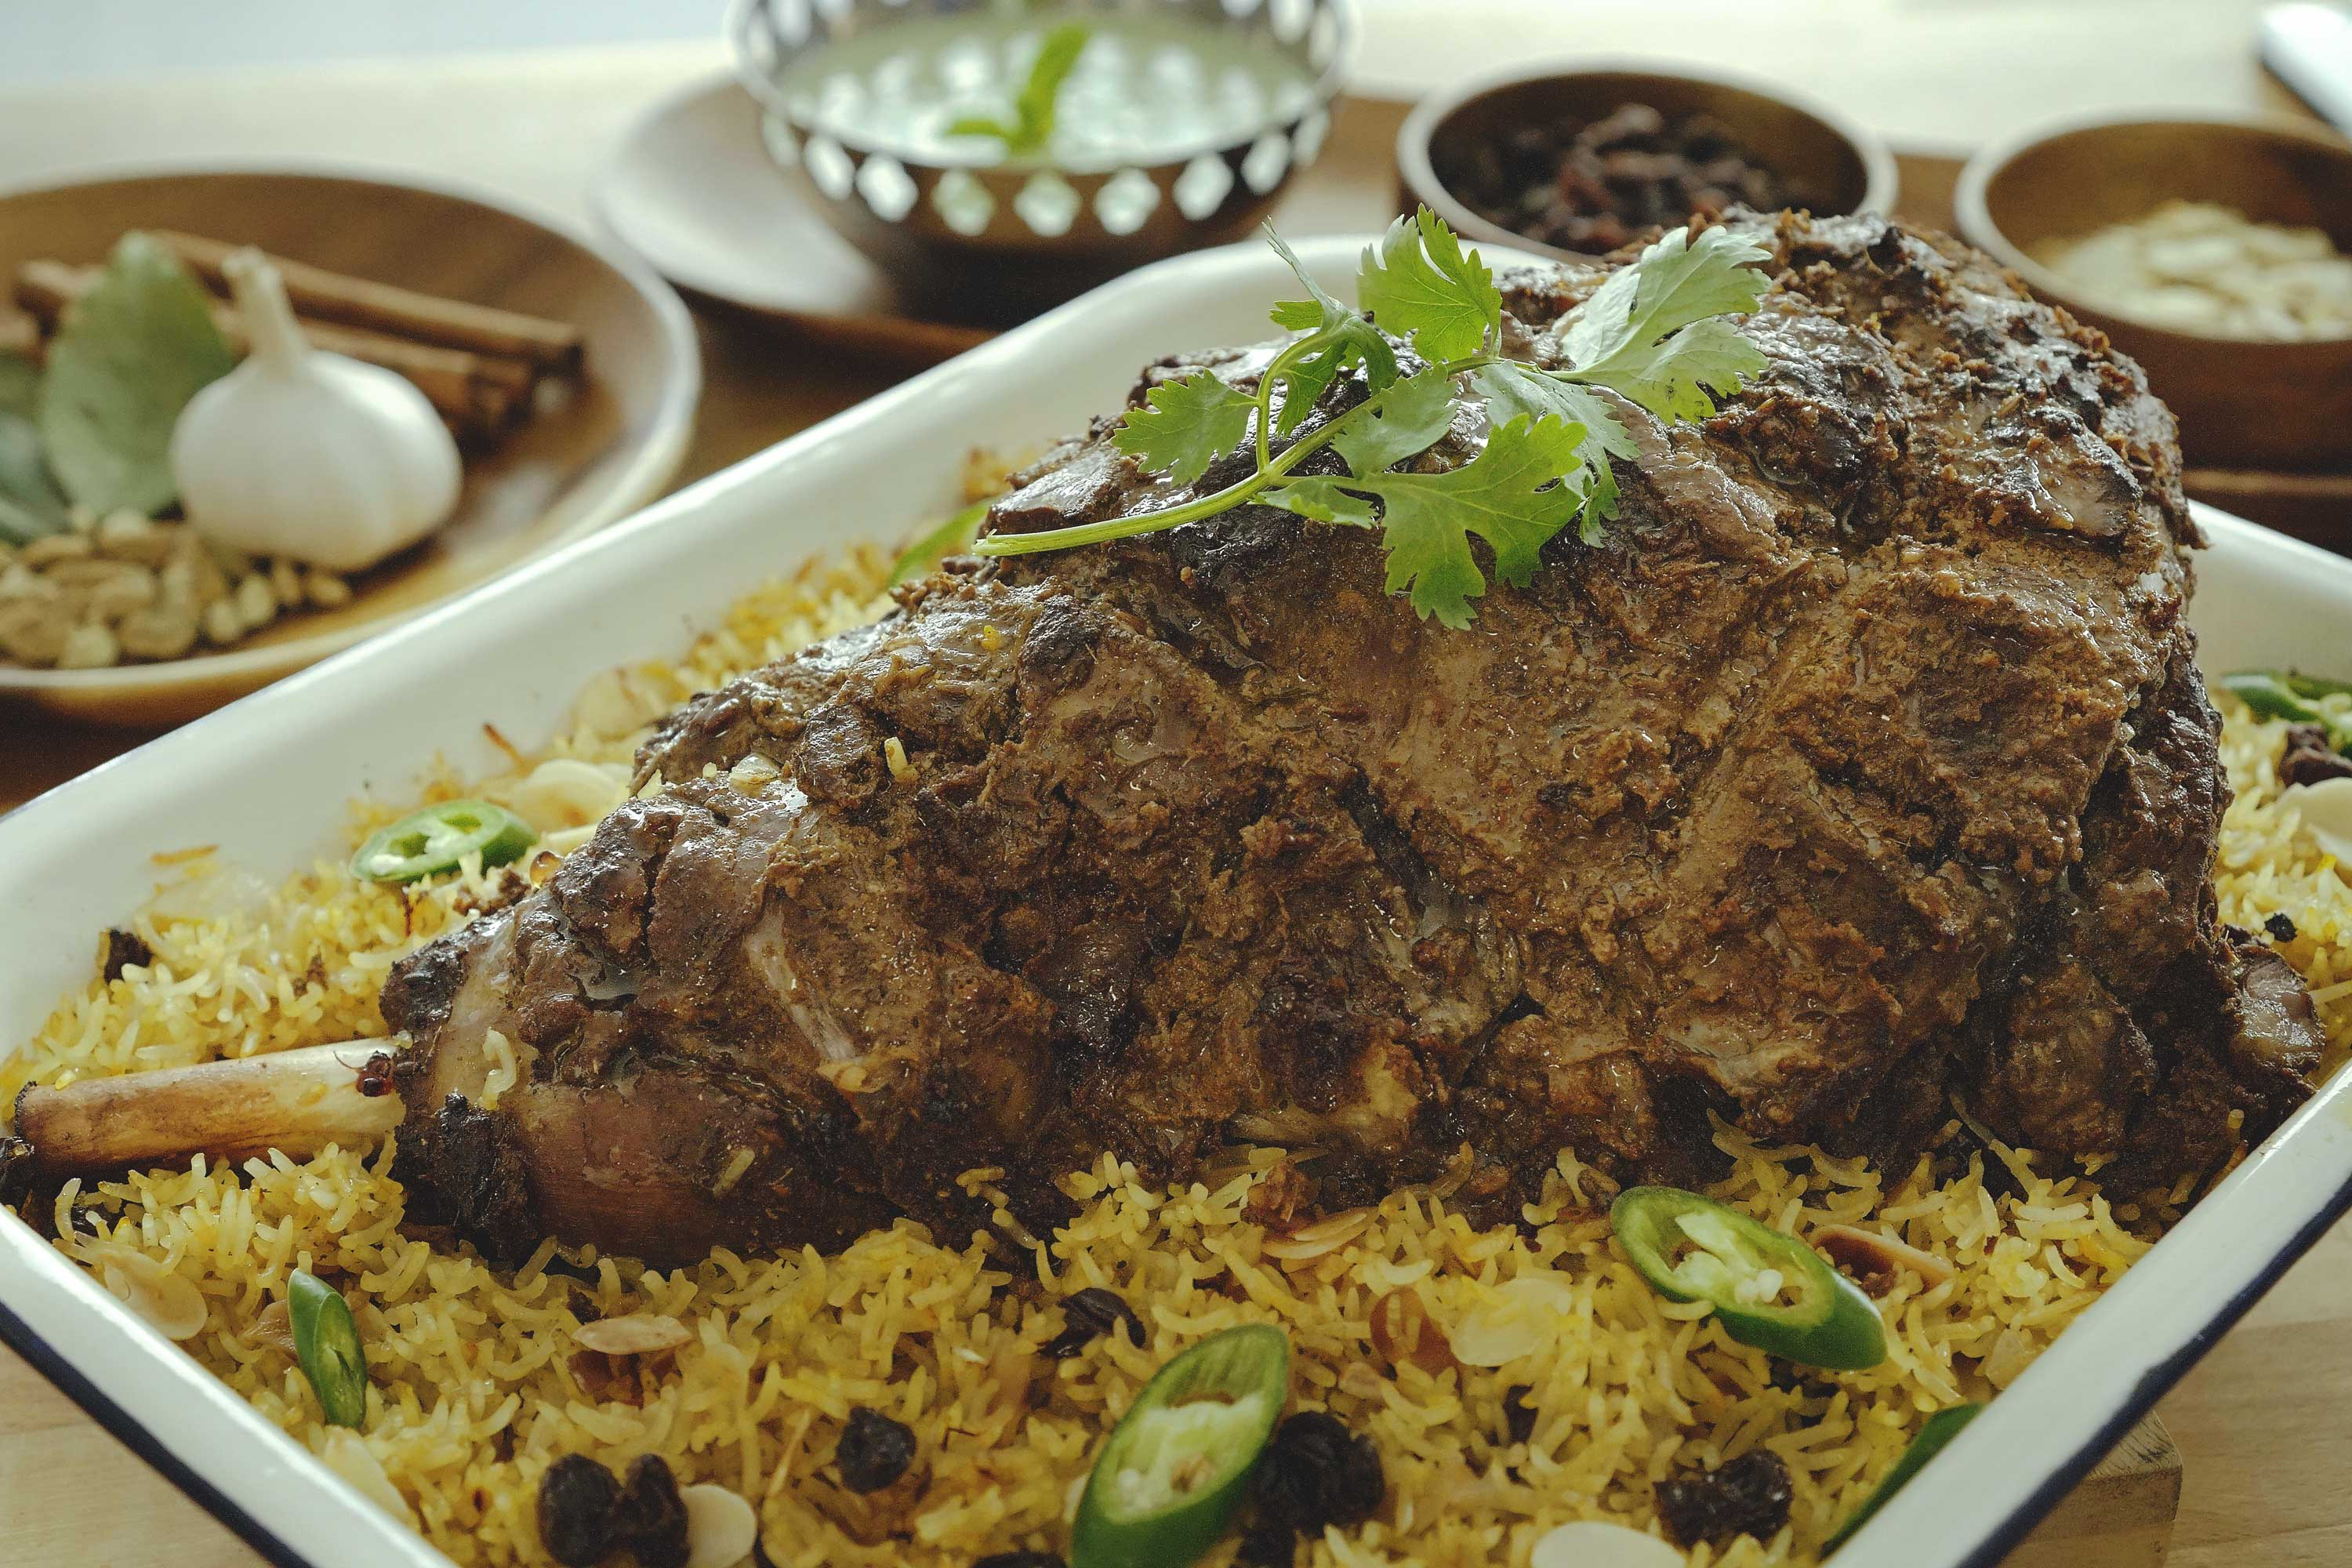 Roasted Spiced Leg of Lamb with Saffron Rice - 烤羊腿番红花饭